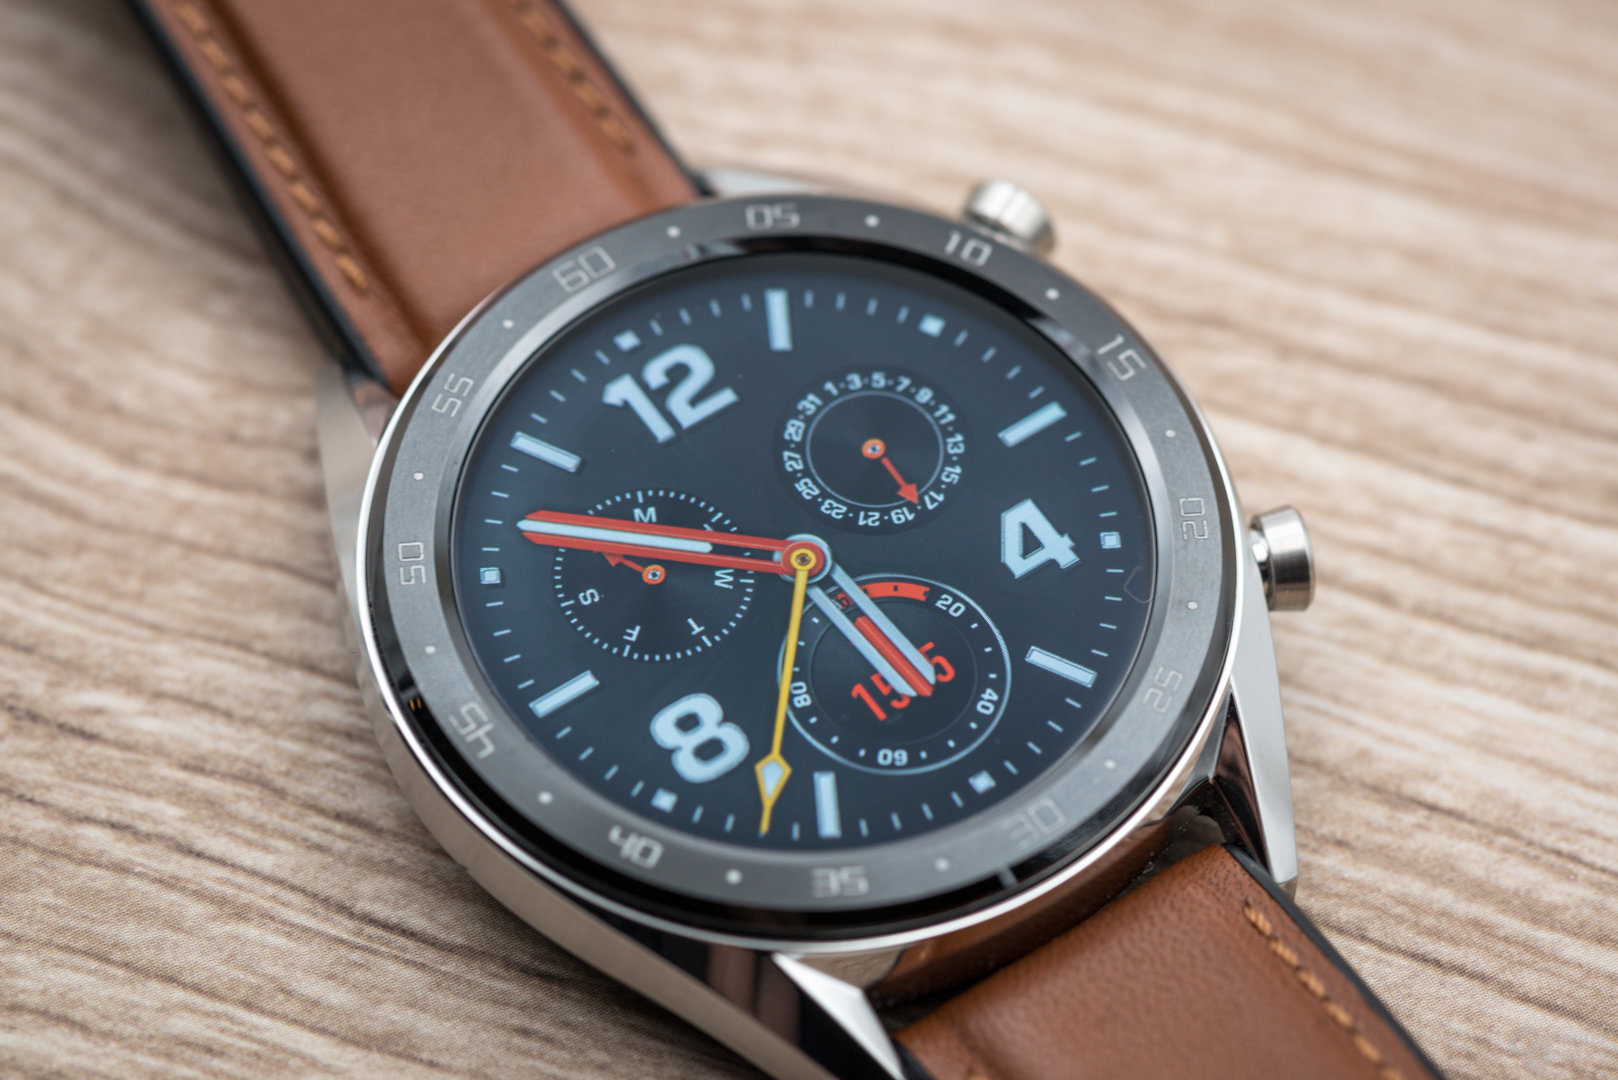 Huawei Watch GT: Display